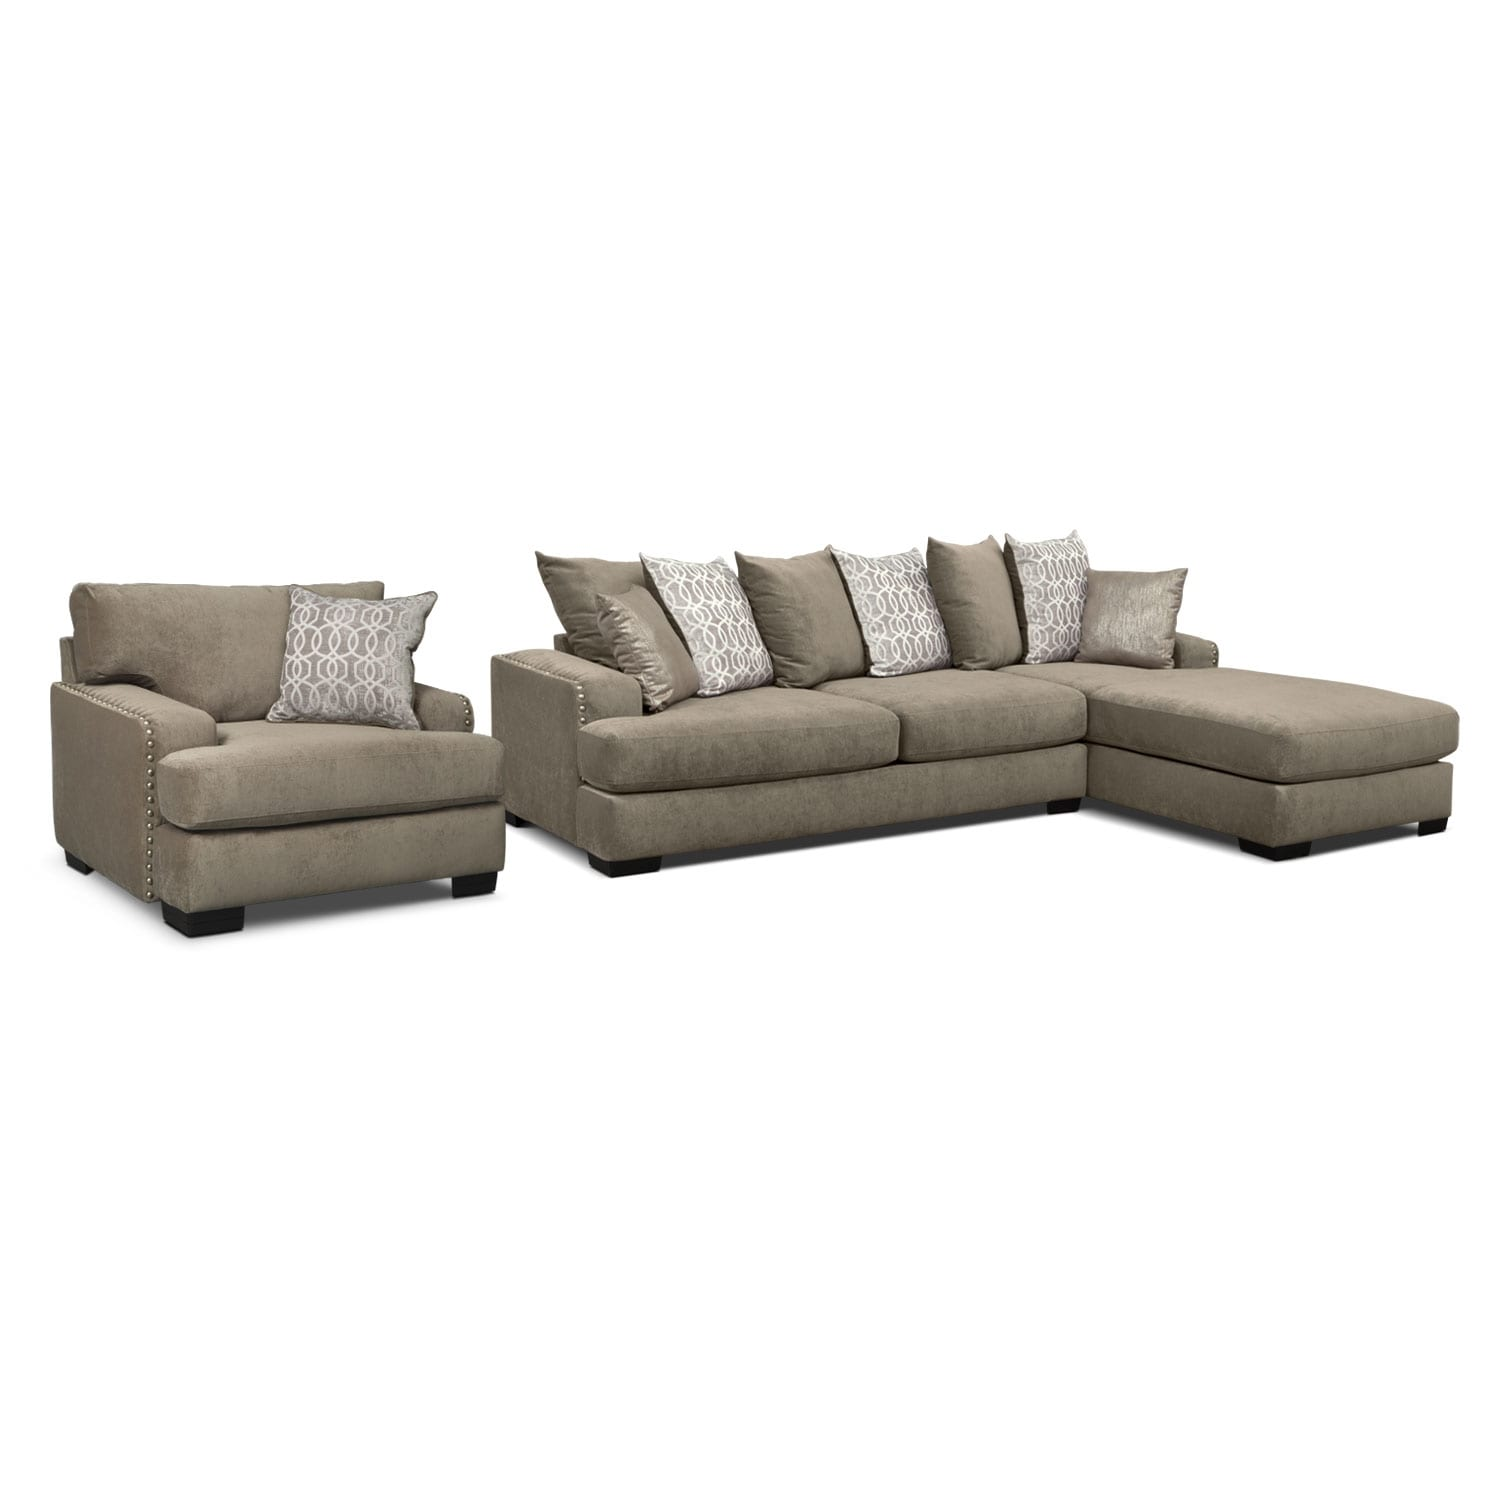 [Tempo 2 Pc. Sectional with Right-Facing Chaise w/ Chair]